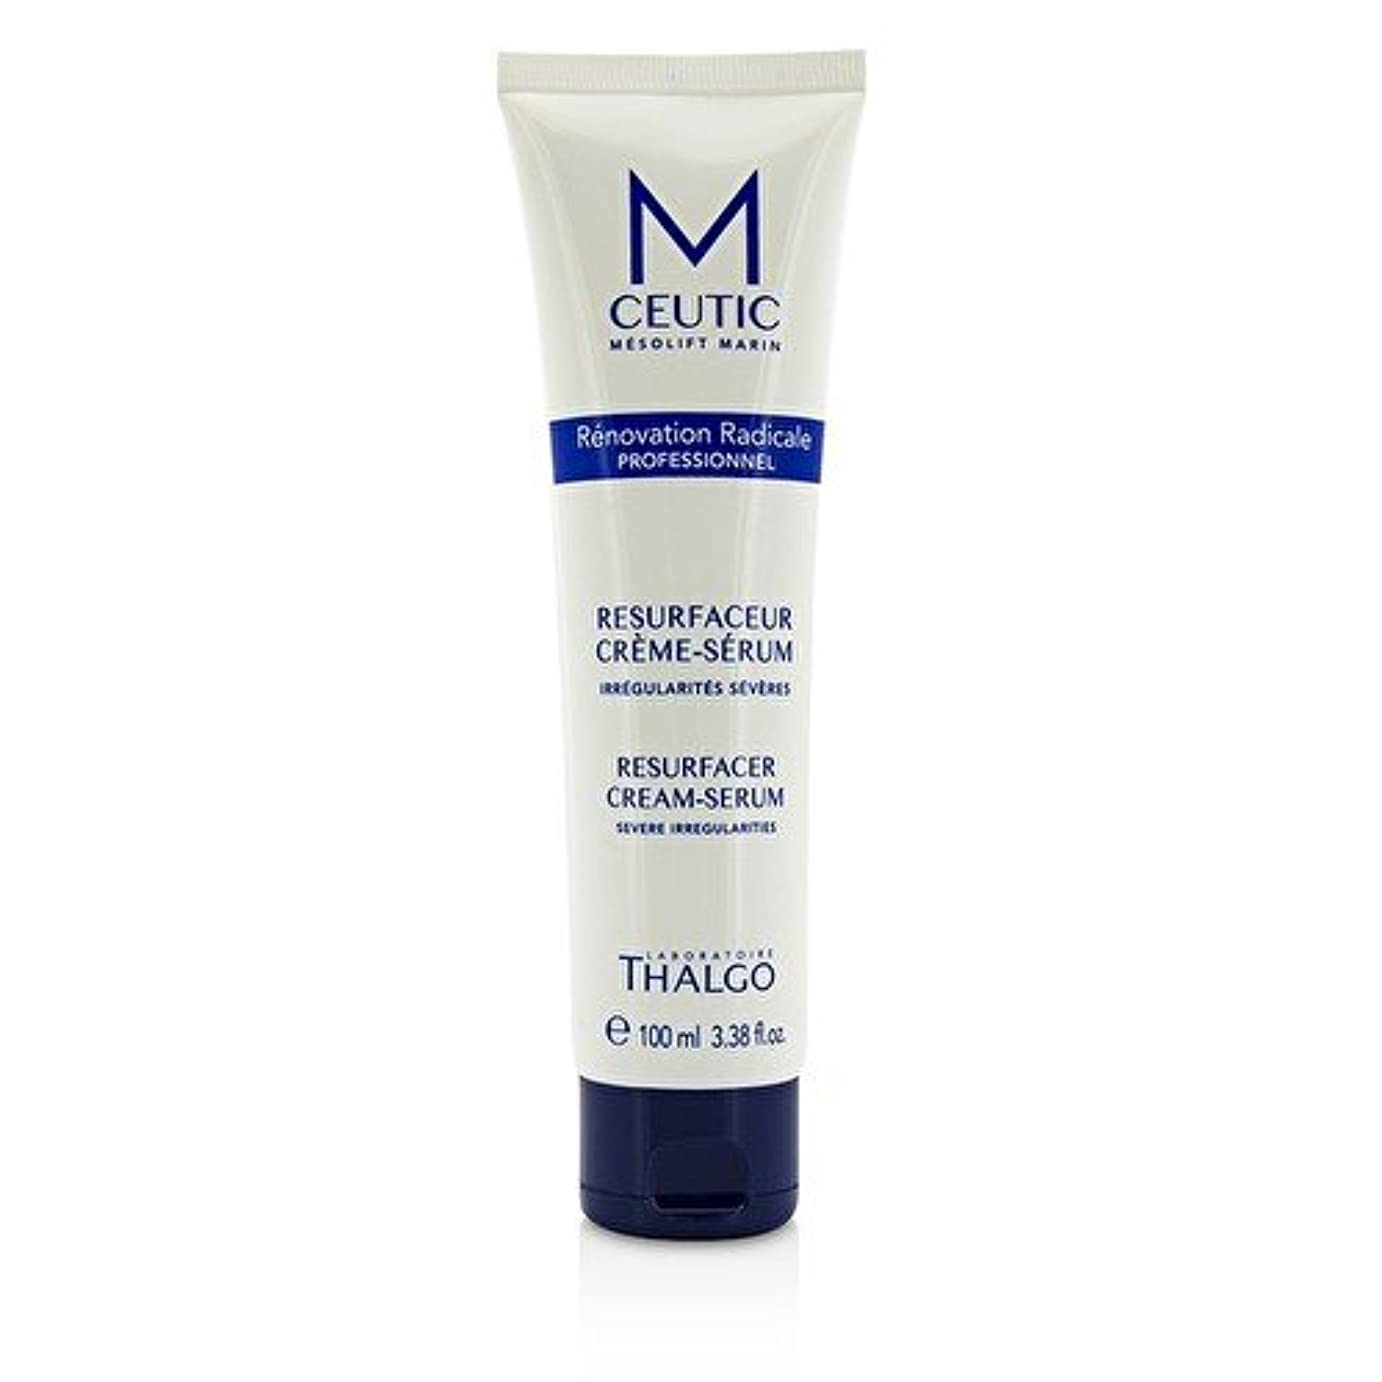 タルゴ MCEUTIC Resurfacer Cream-Serum - Salon Size 100ml/3.38oz並行輸入品